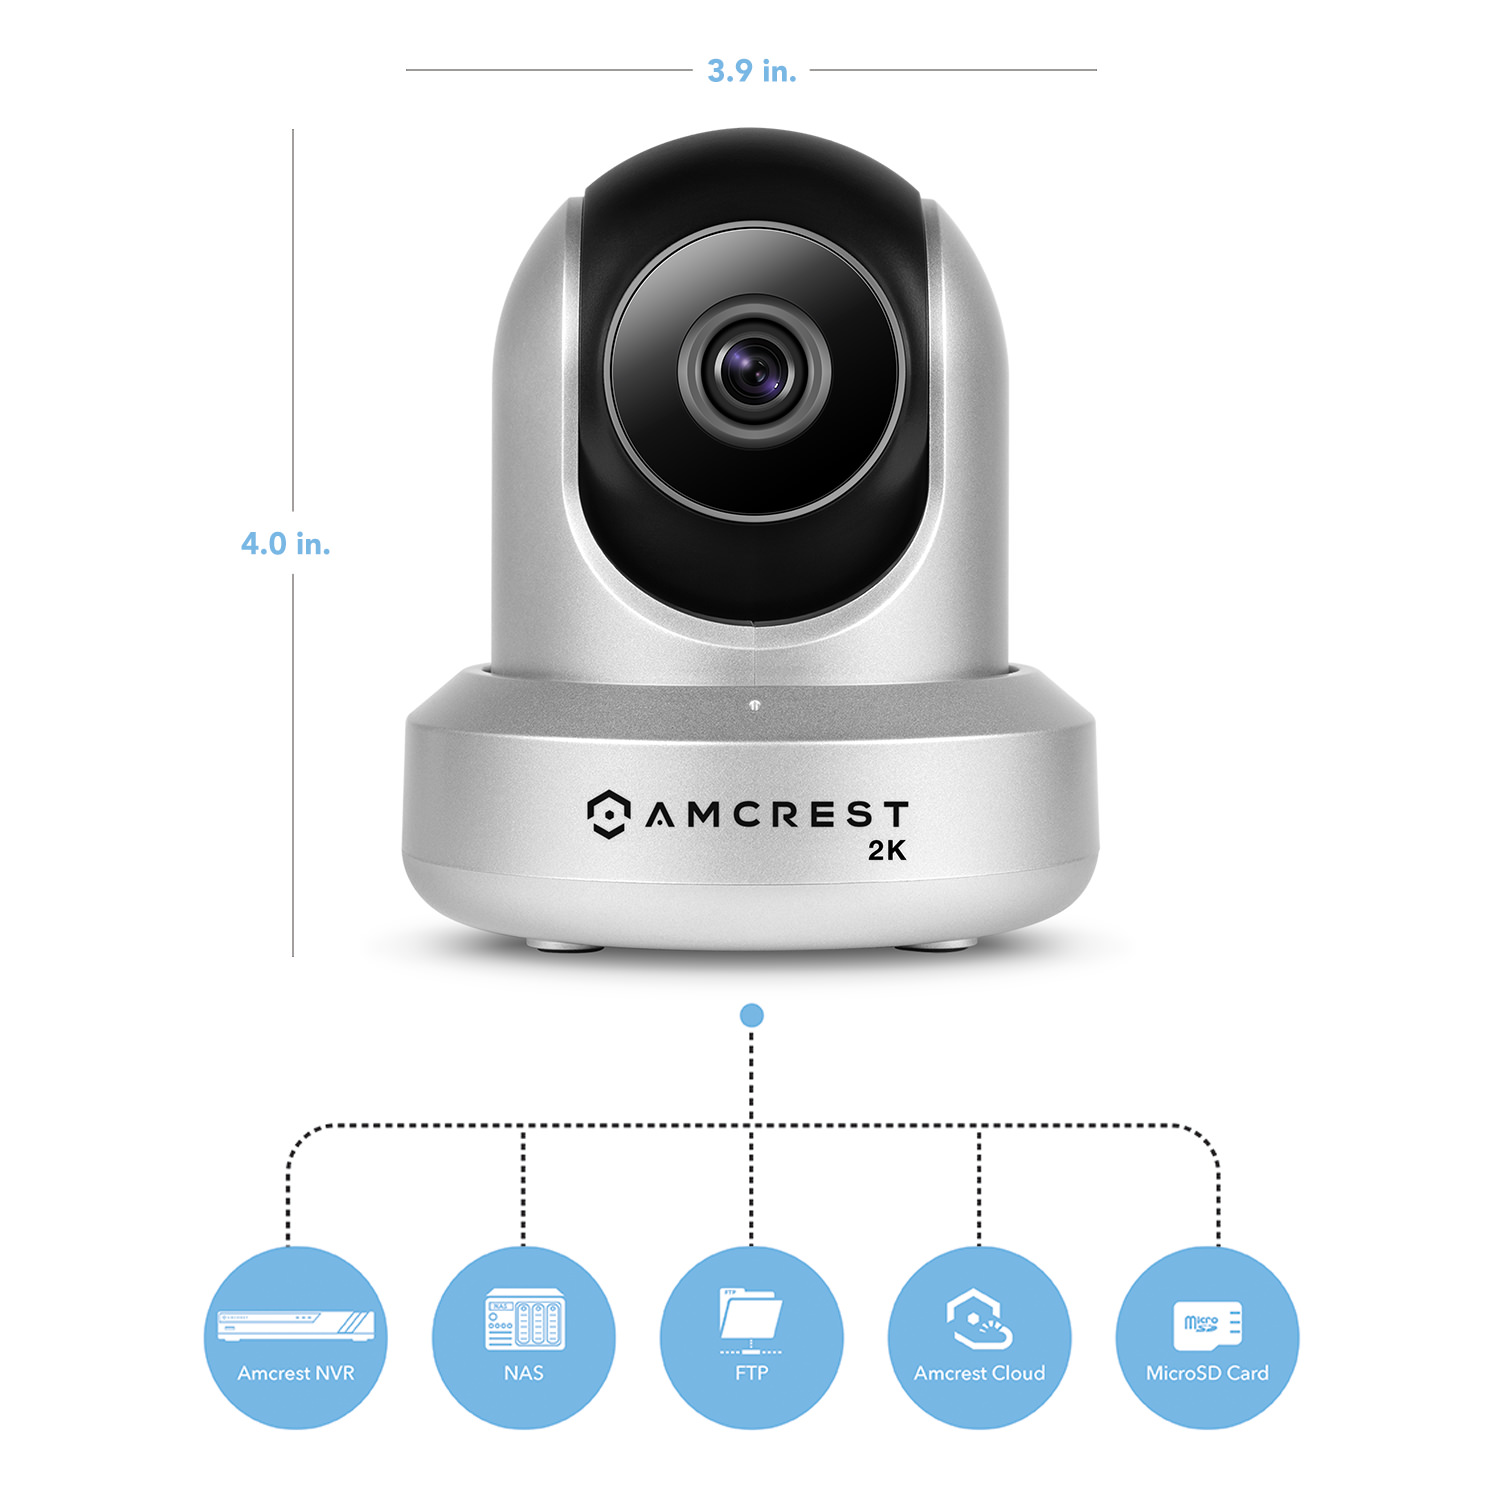 Amcrest UltraHD 2K (3MP/2304TVL) WiFi Video Security IP Camera with  Pan/Tilt, Two-Way Audio, 3MP @ 20FPS, Wide 90° Viewing Angle and Night  Vision